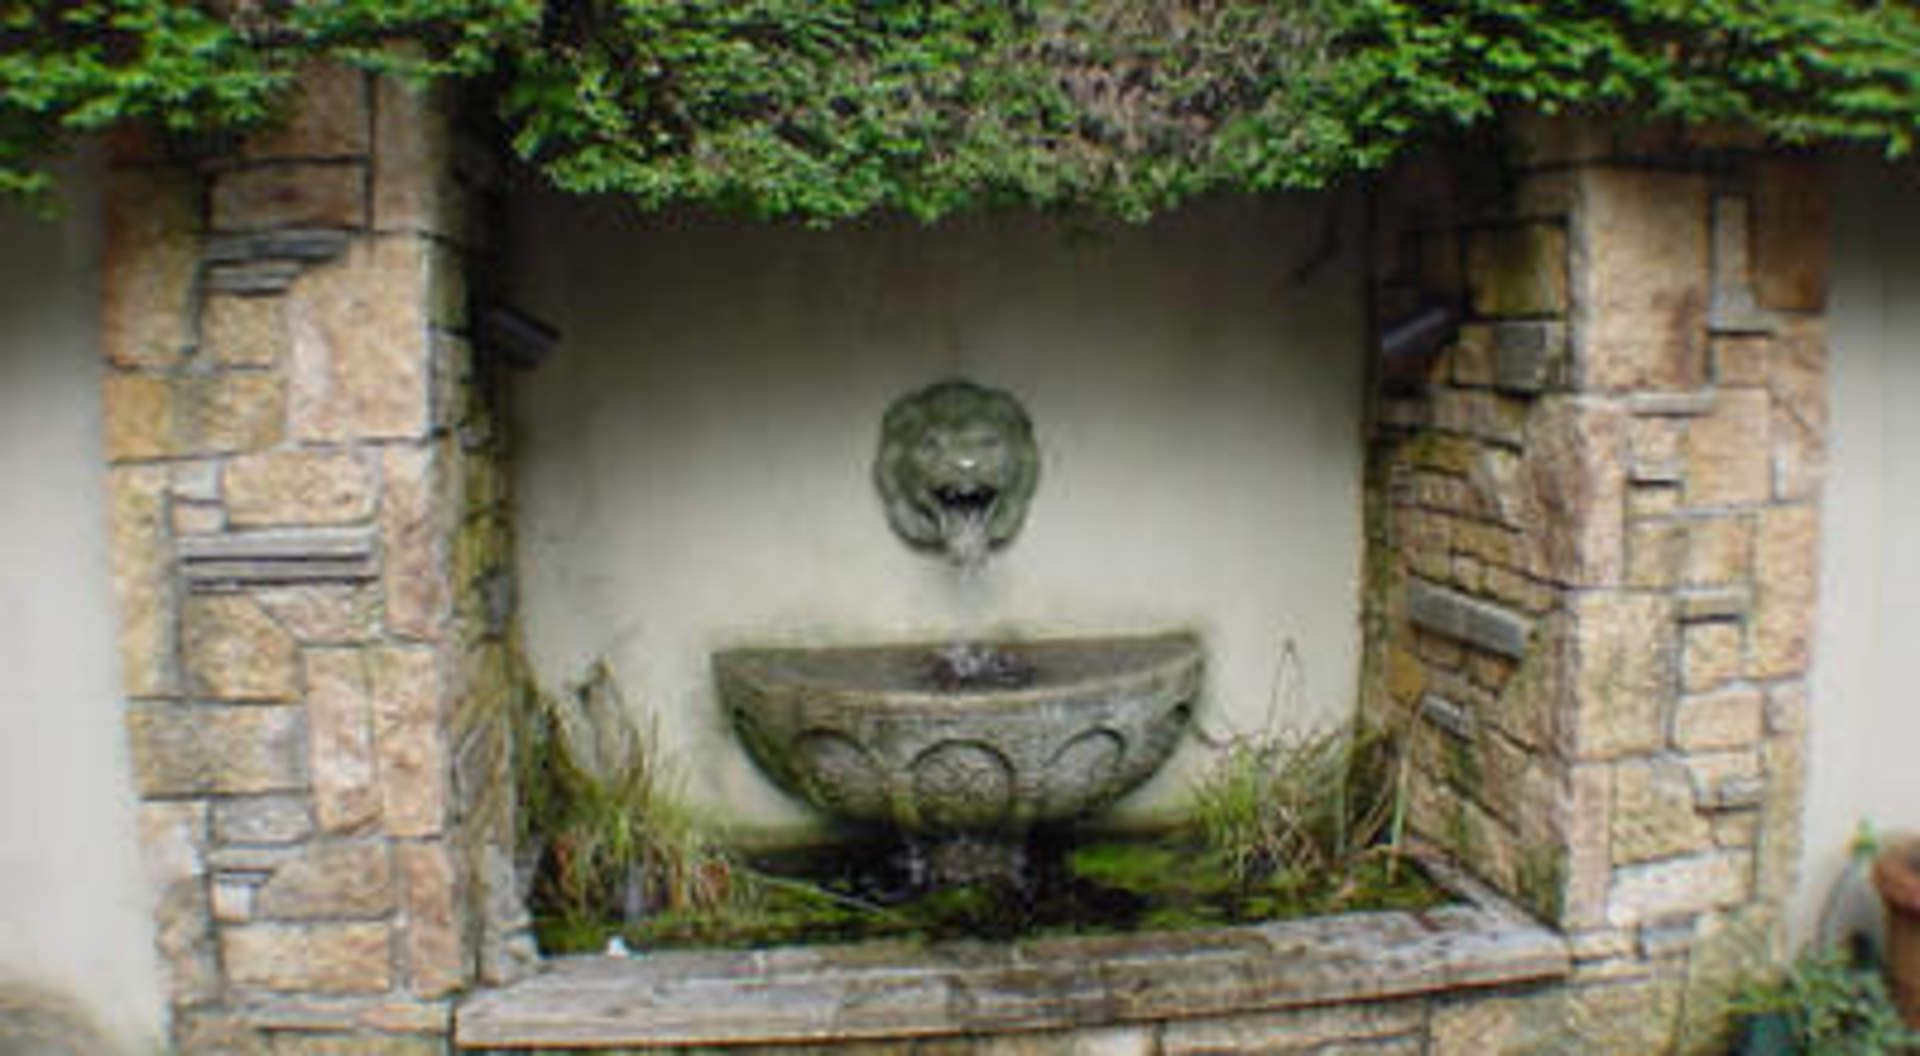 Trickling Fountain in Courtyard